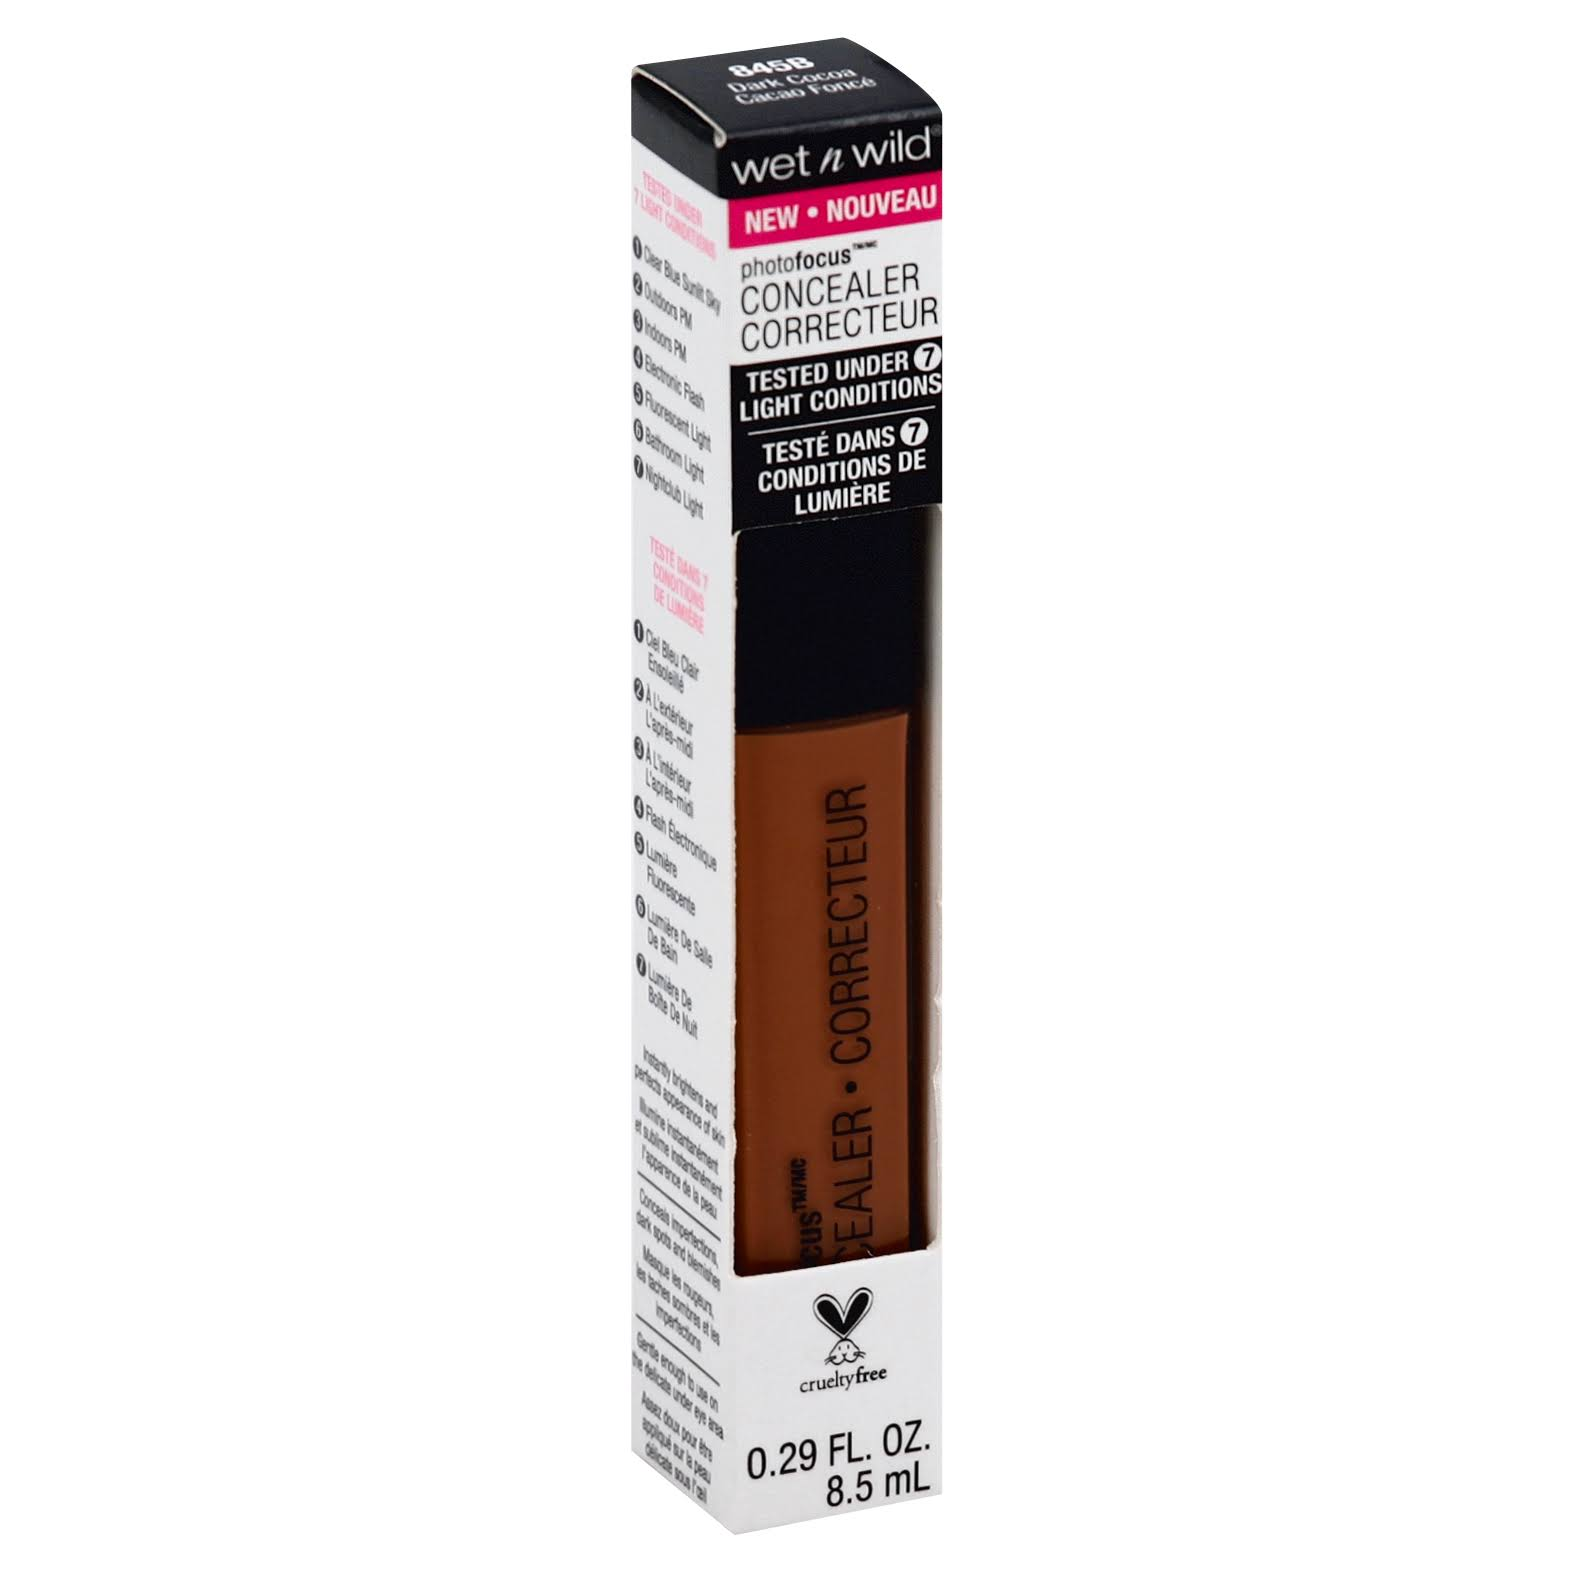 Wet n Wild Photo Focus Concealer - 845B Dark Cocoa, 0.29oz